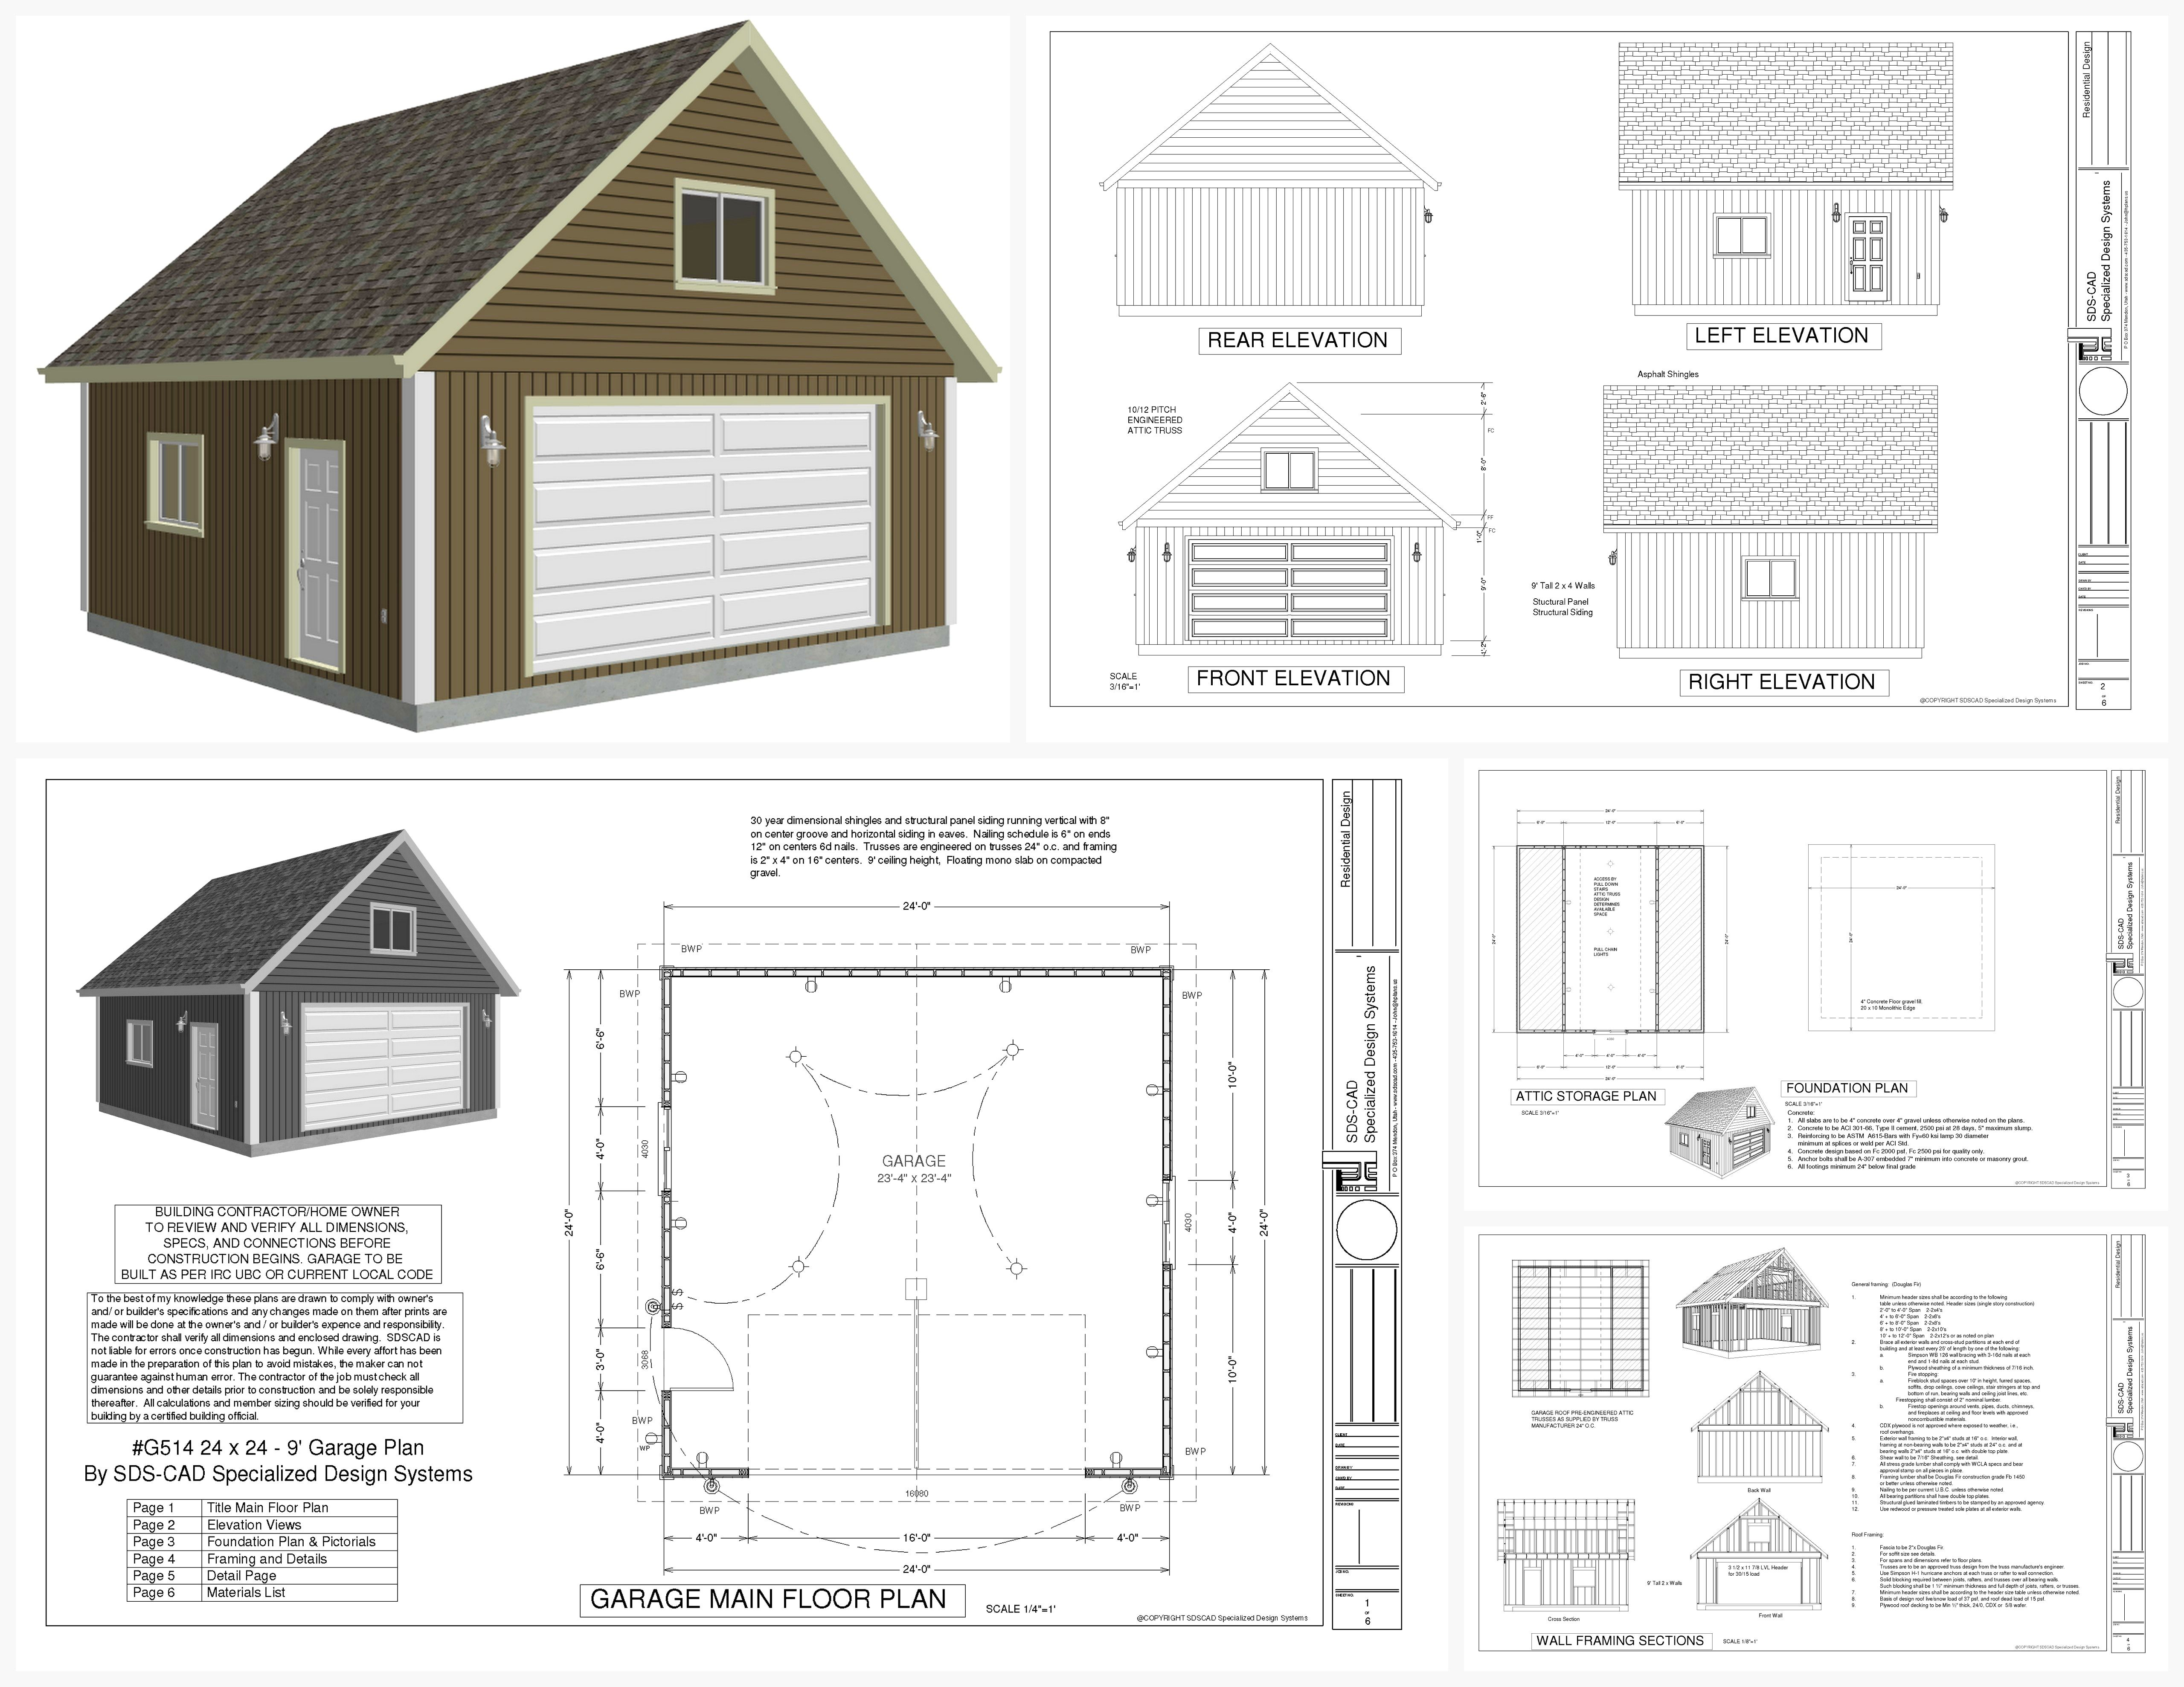 Home Design Contemporary Menards Garage Kits Embraces With Images Garage Plans Pole Barn House Plans Barn House Plans